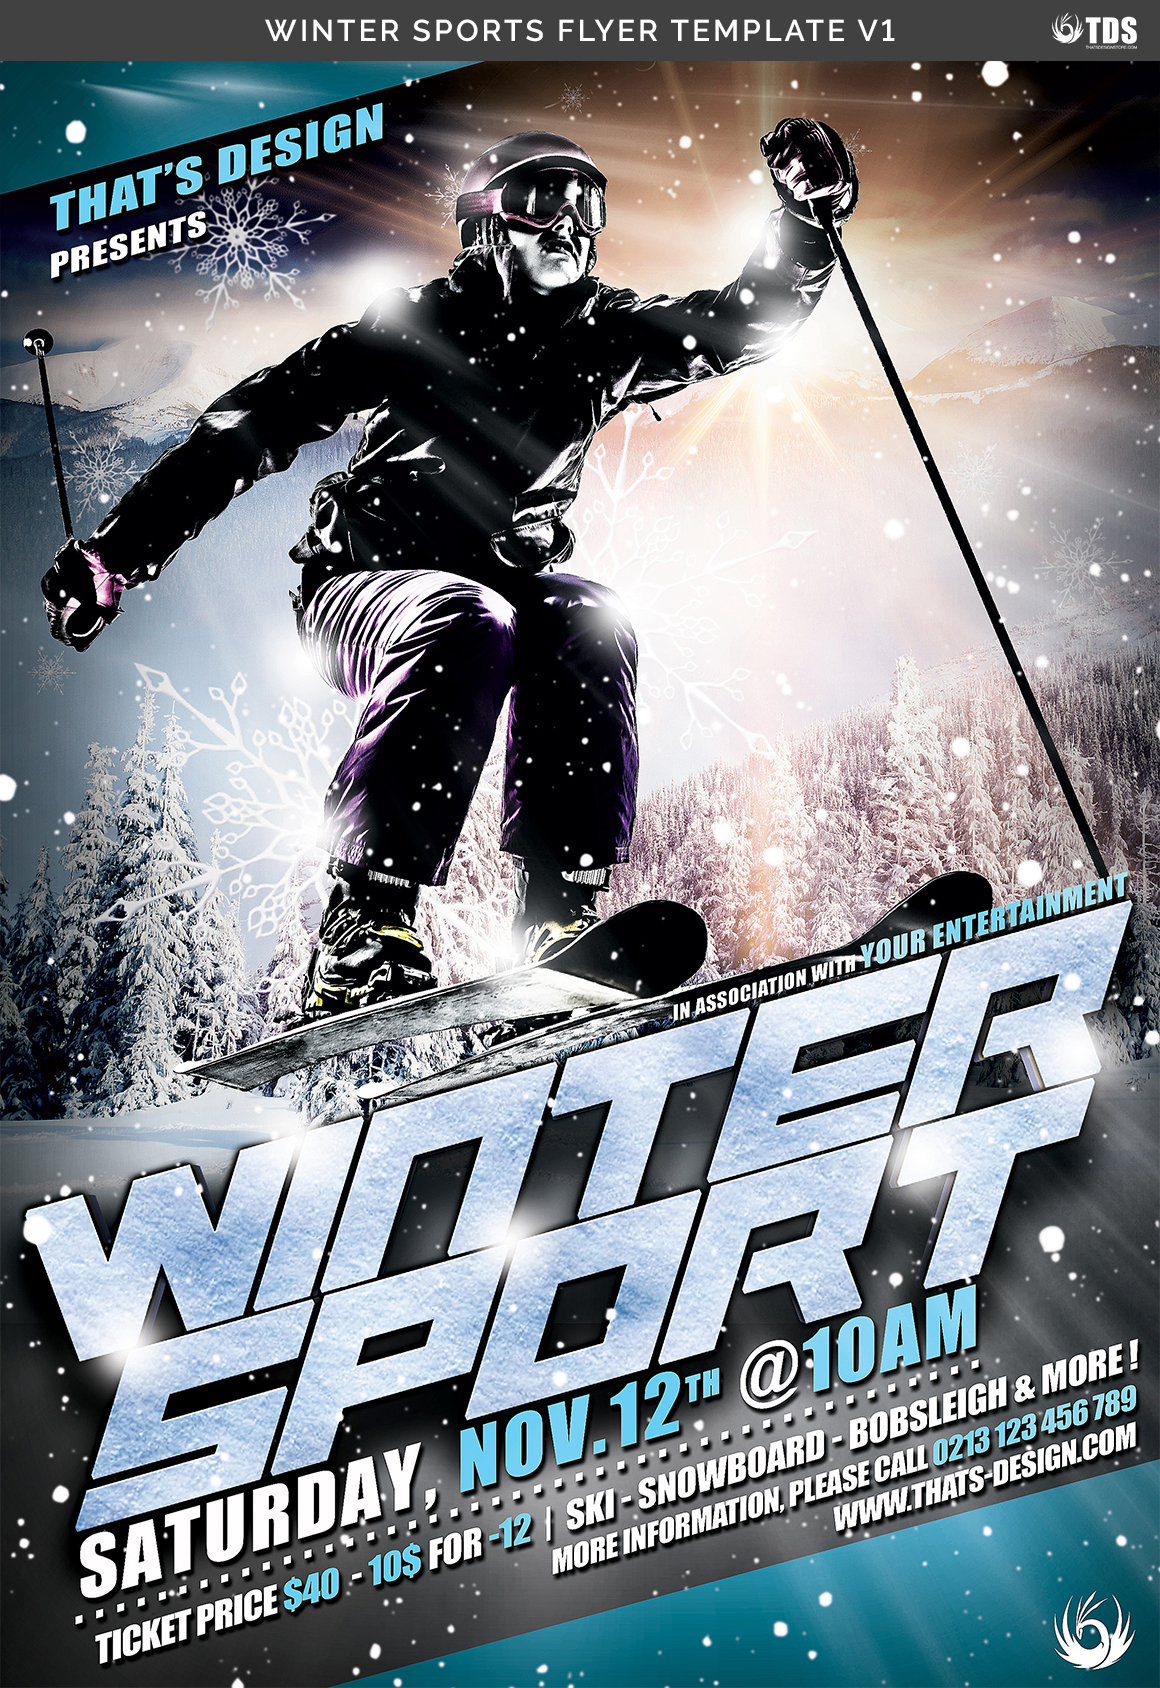 Winter Sports Flyer Template V1 example image 7